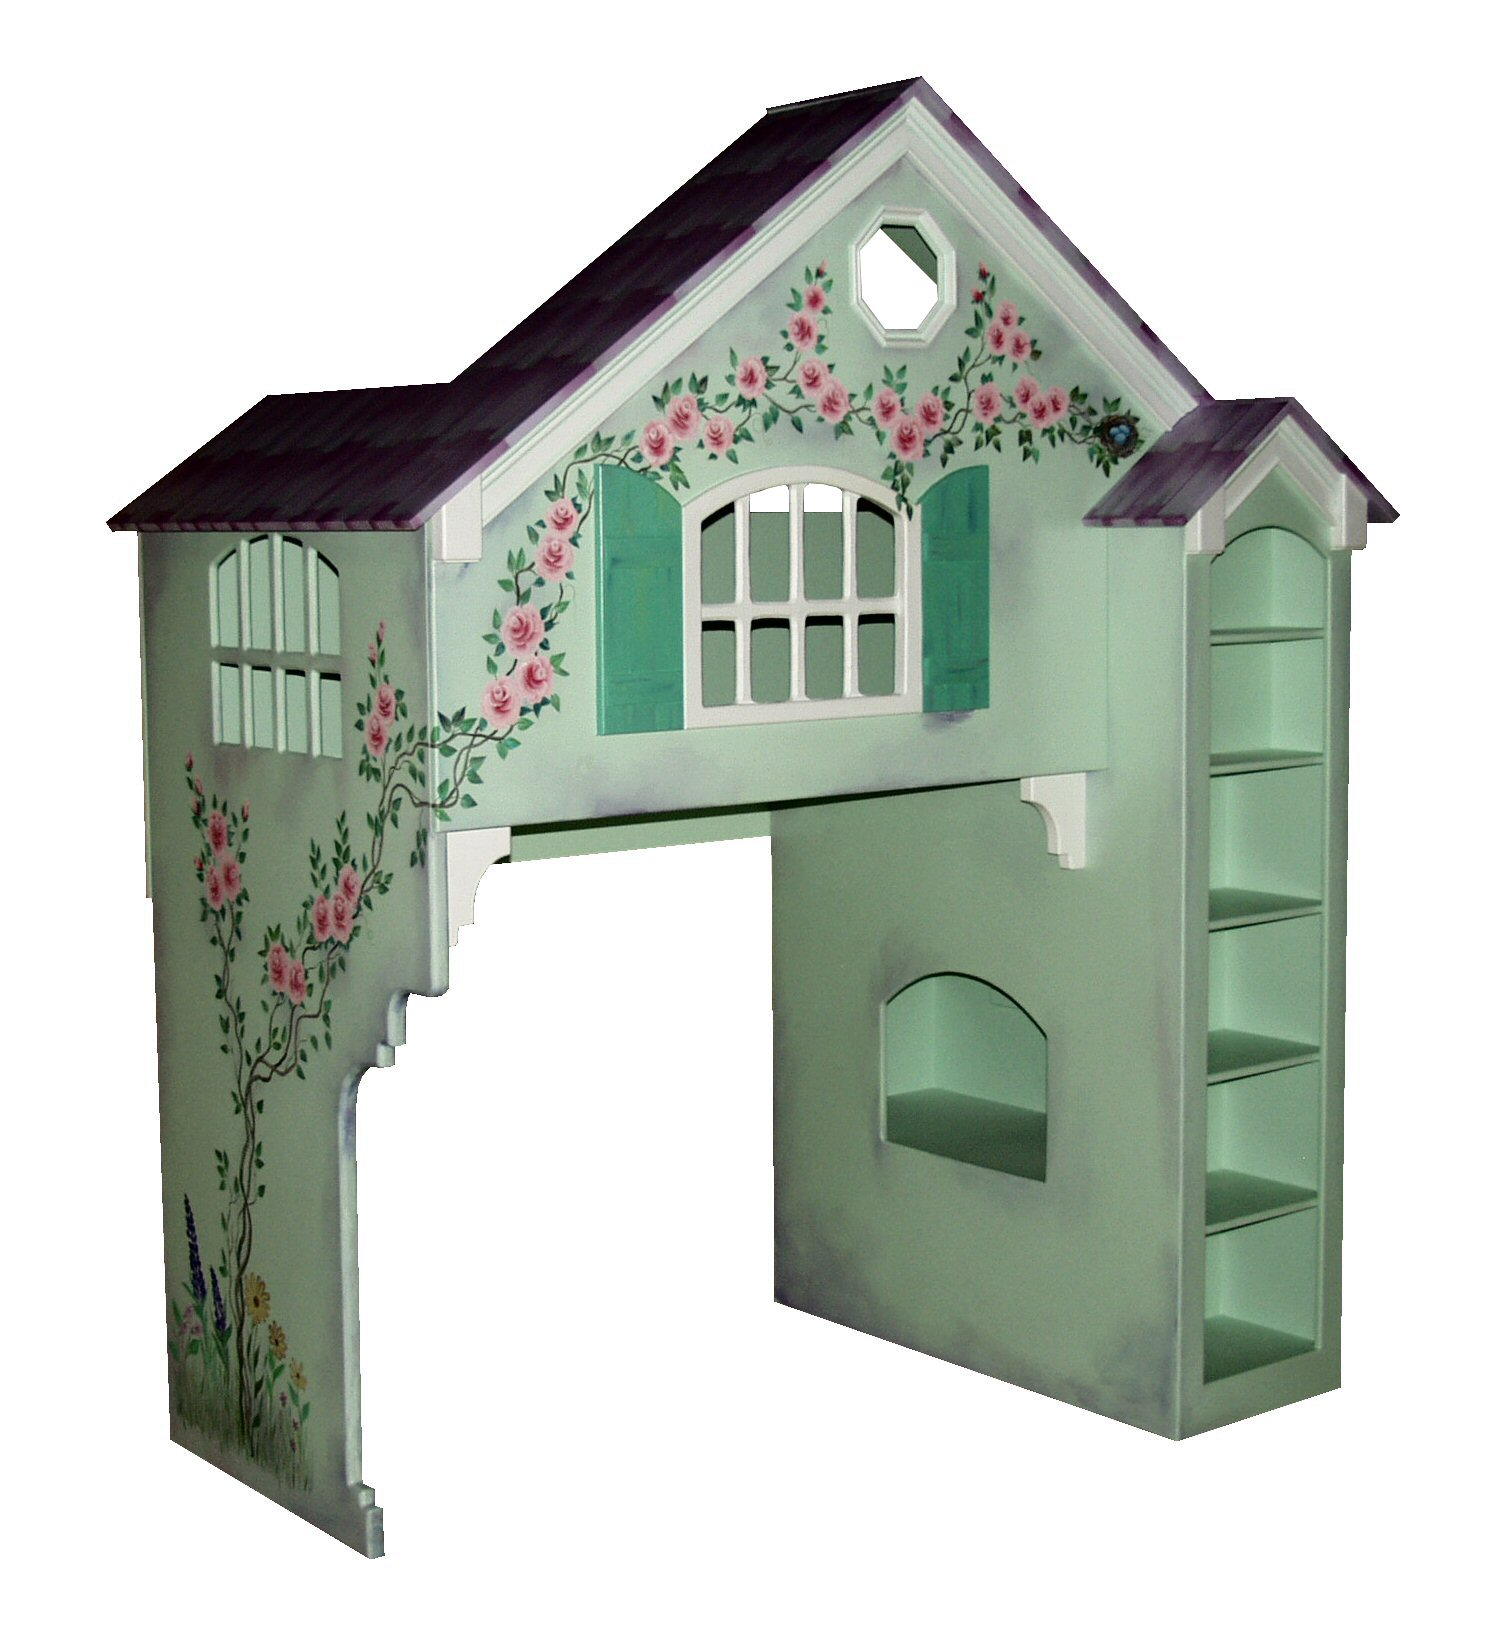 Green Dollhouse Bunk Bed w/Green Shutters